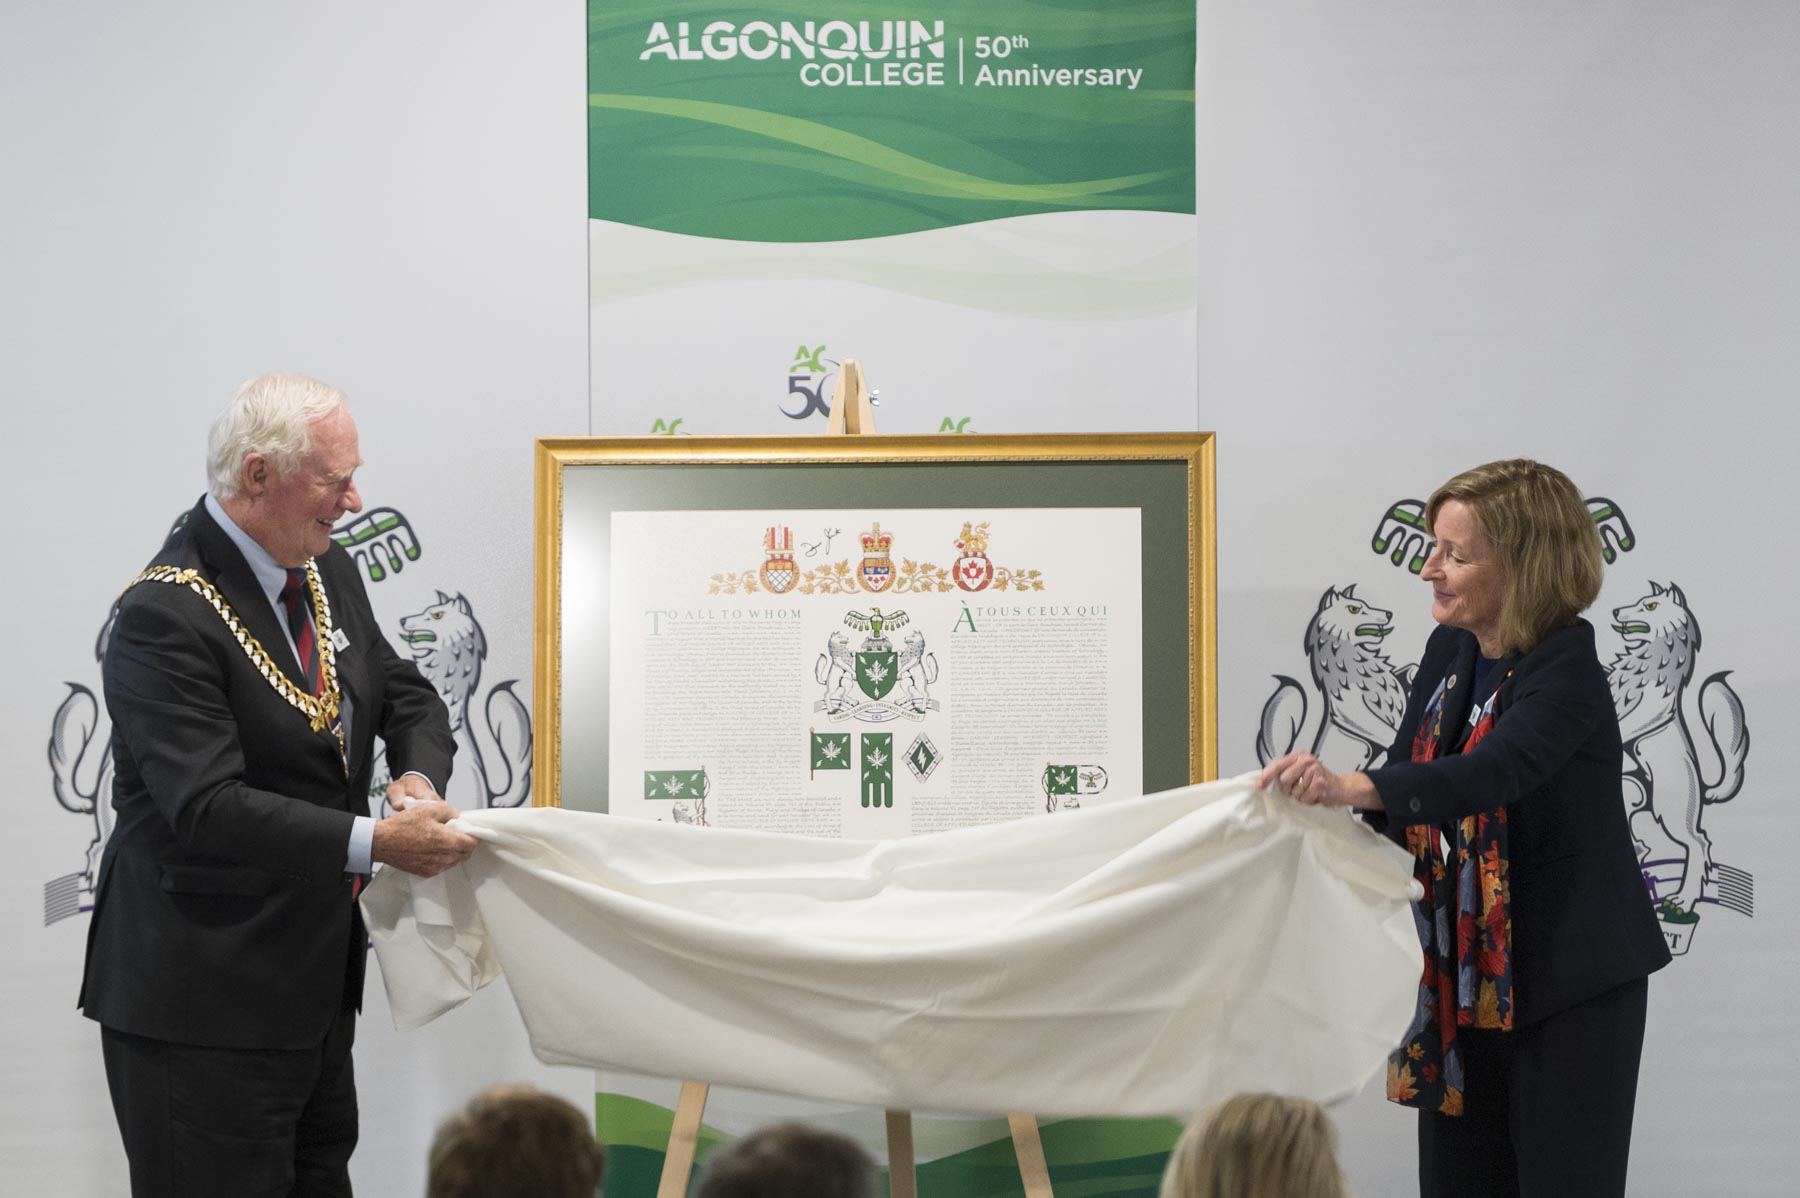 The Governor General and the President unveiled the college's new Arms, Flags and Badge.